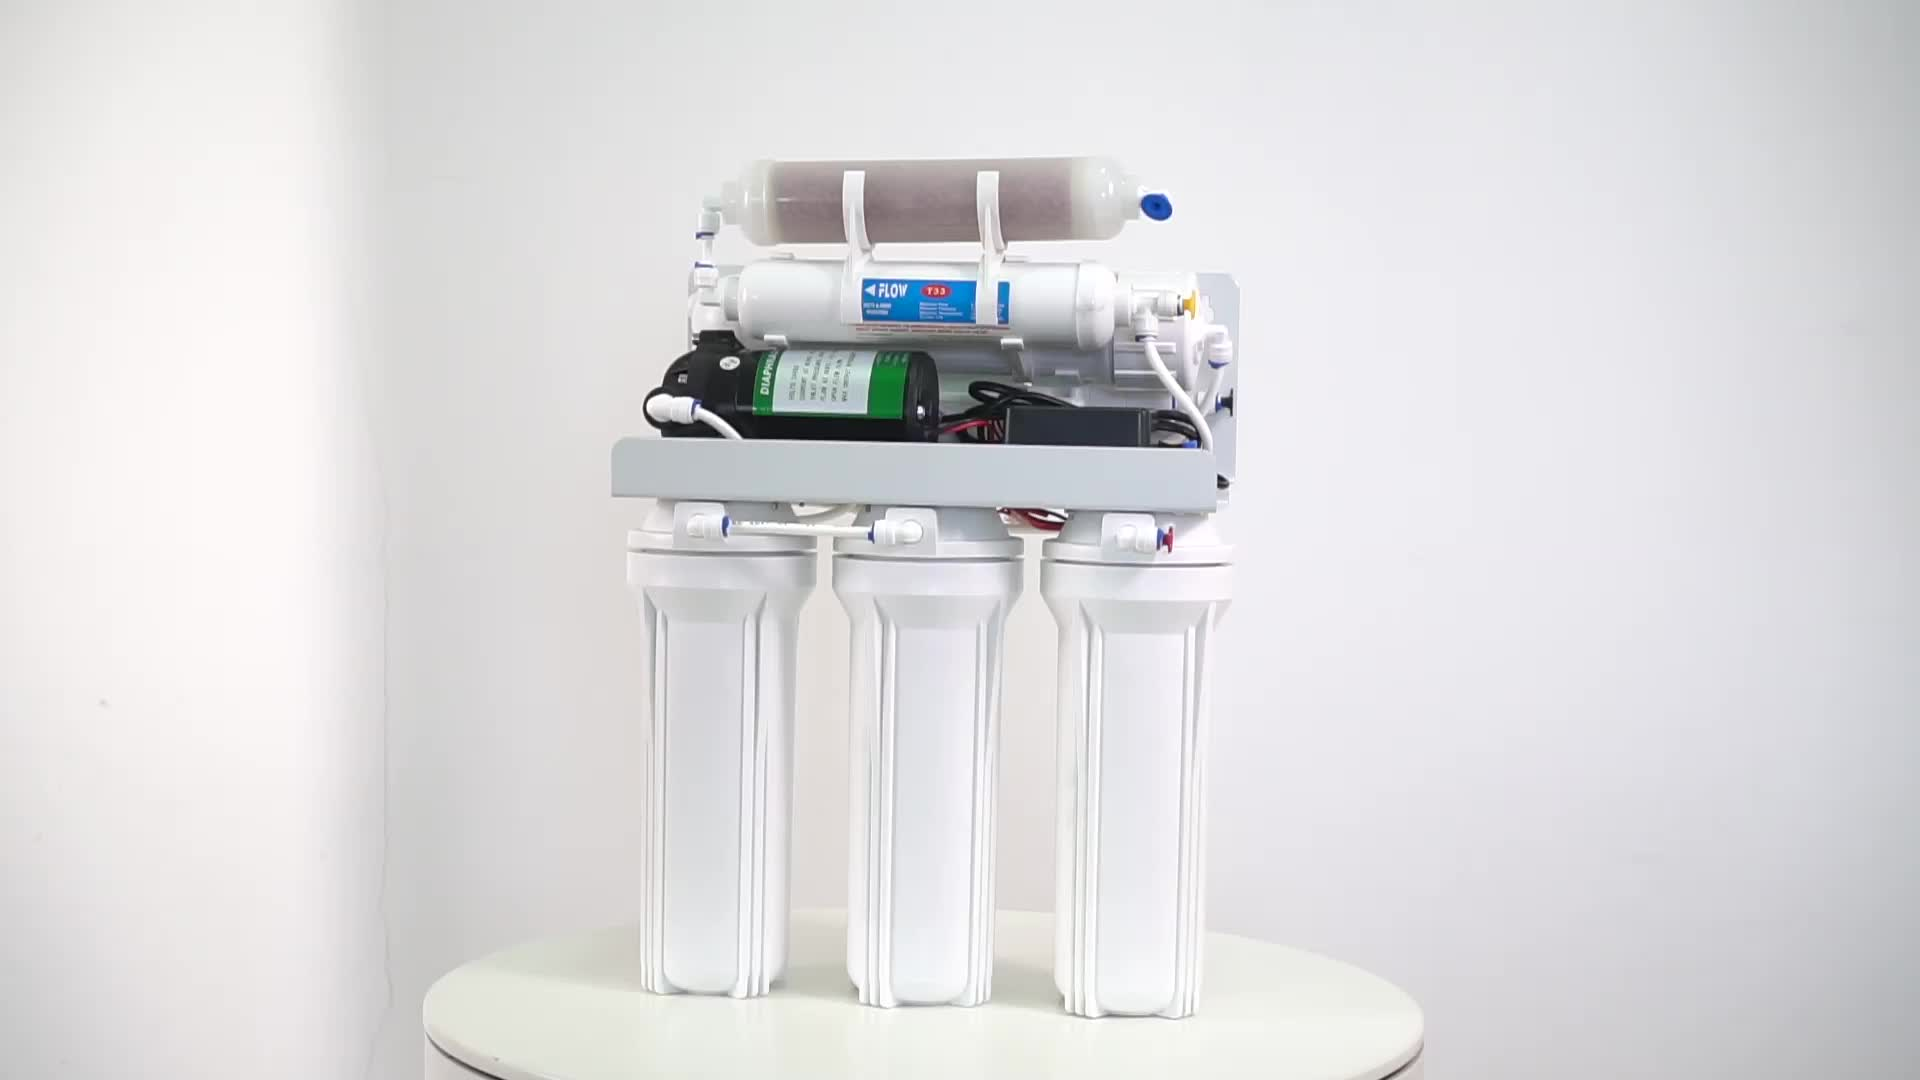 6 Stage Home Water Purifier Filter Water By Ro System With